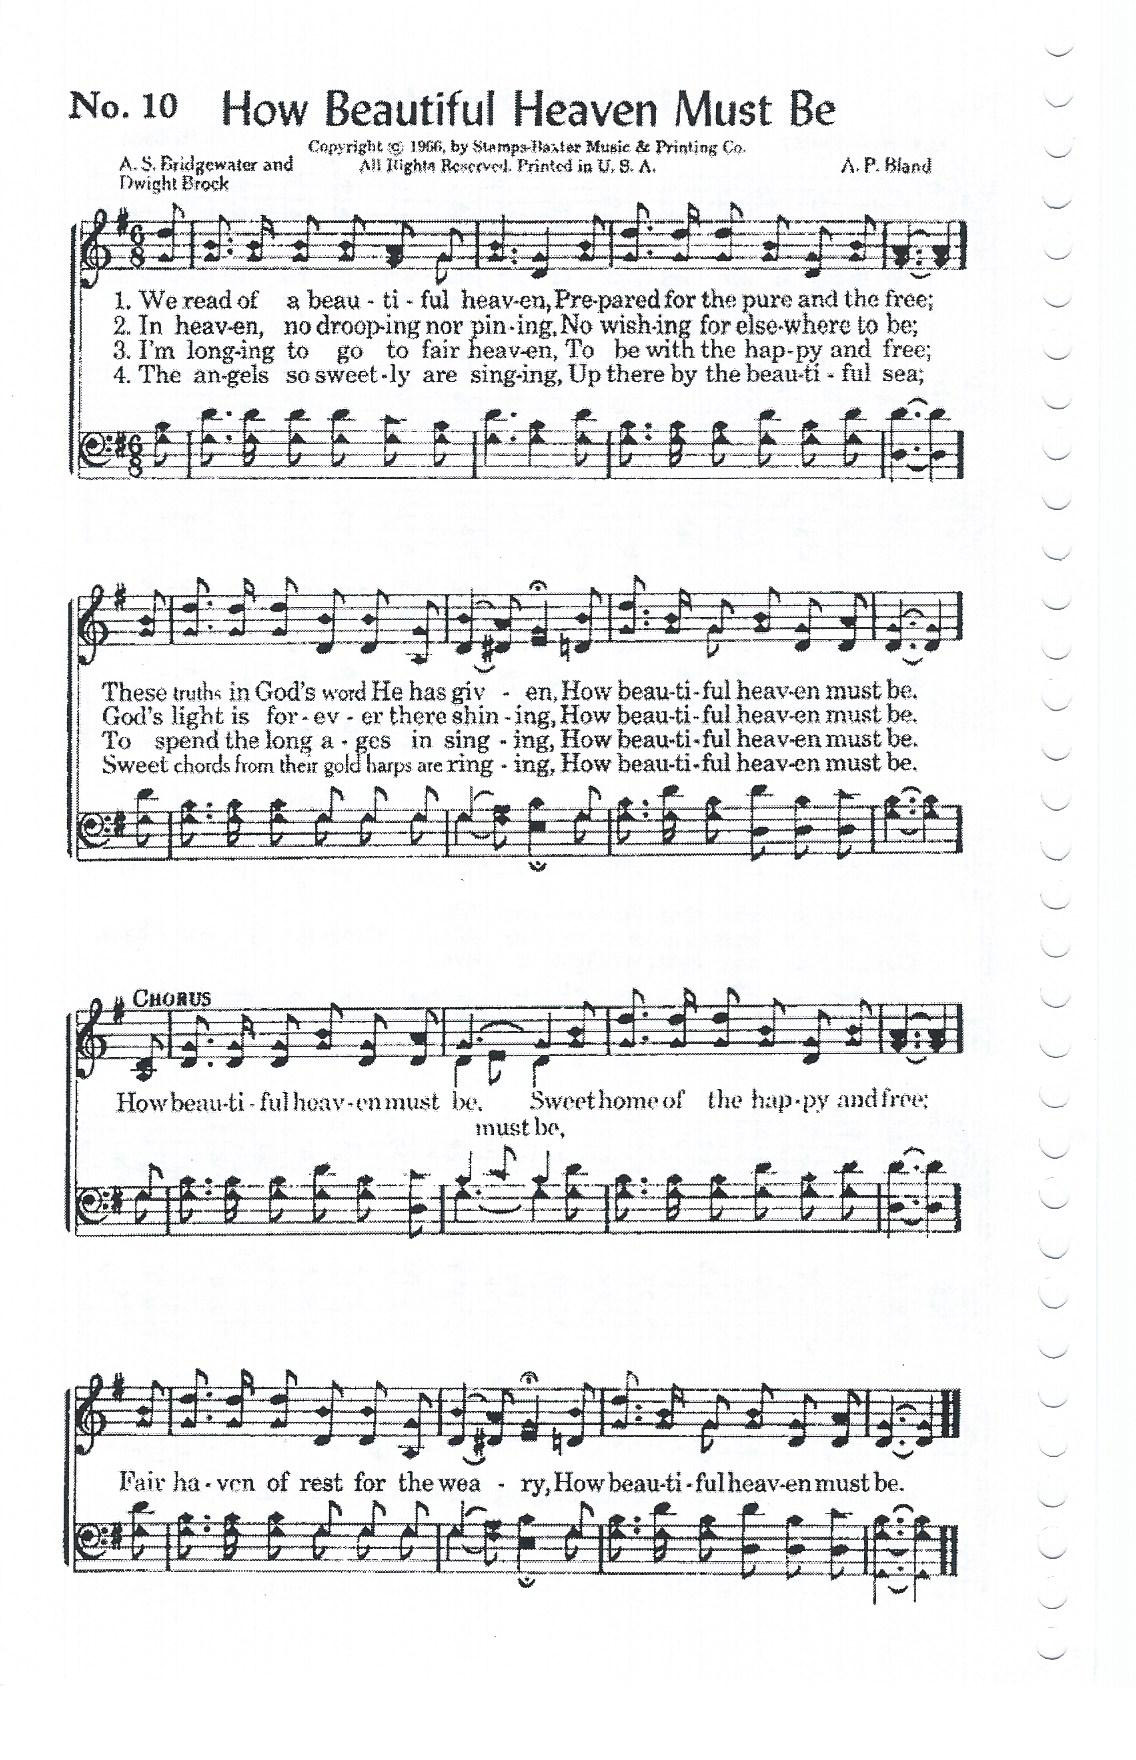 Heaven Is A Wonderful Place Free Sheet Music Wonderful Place